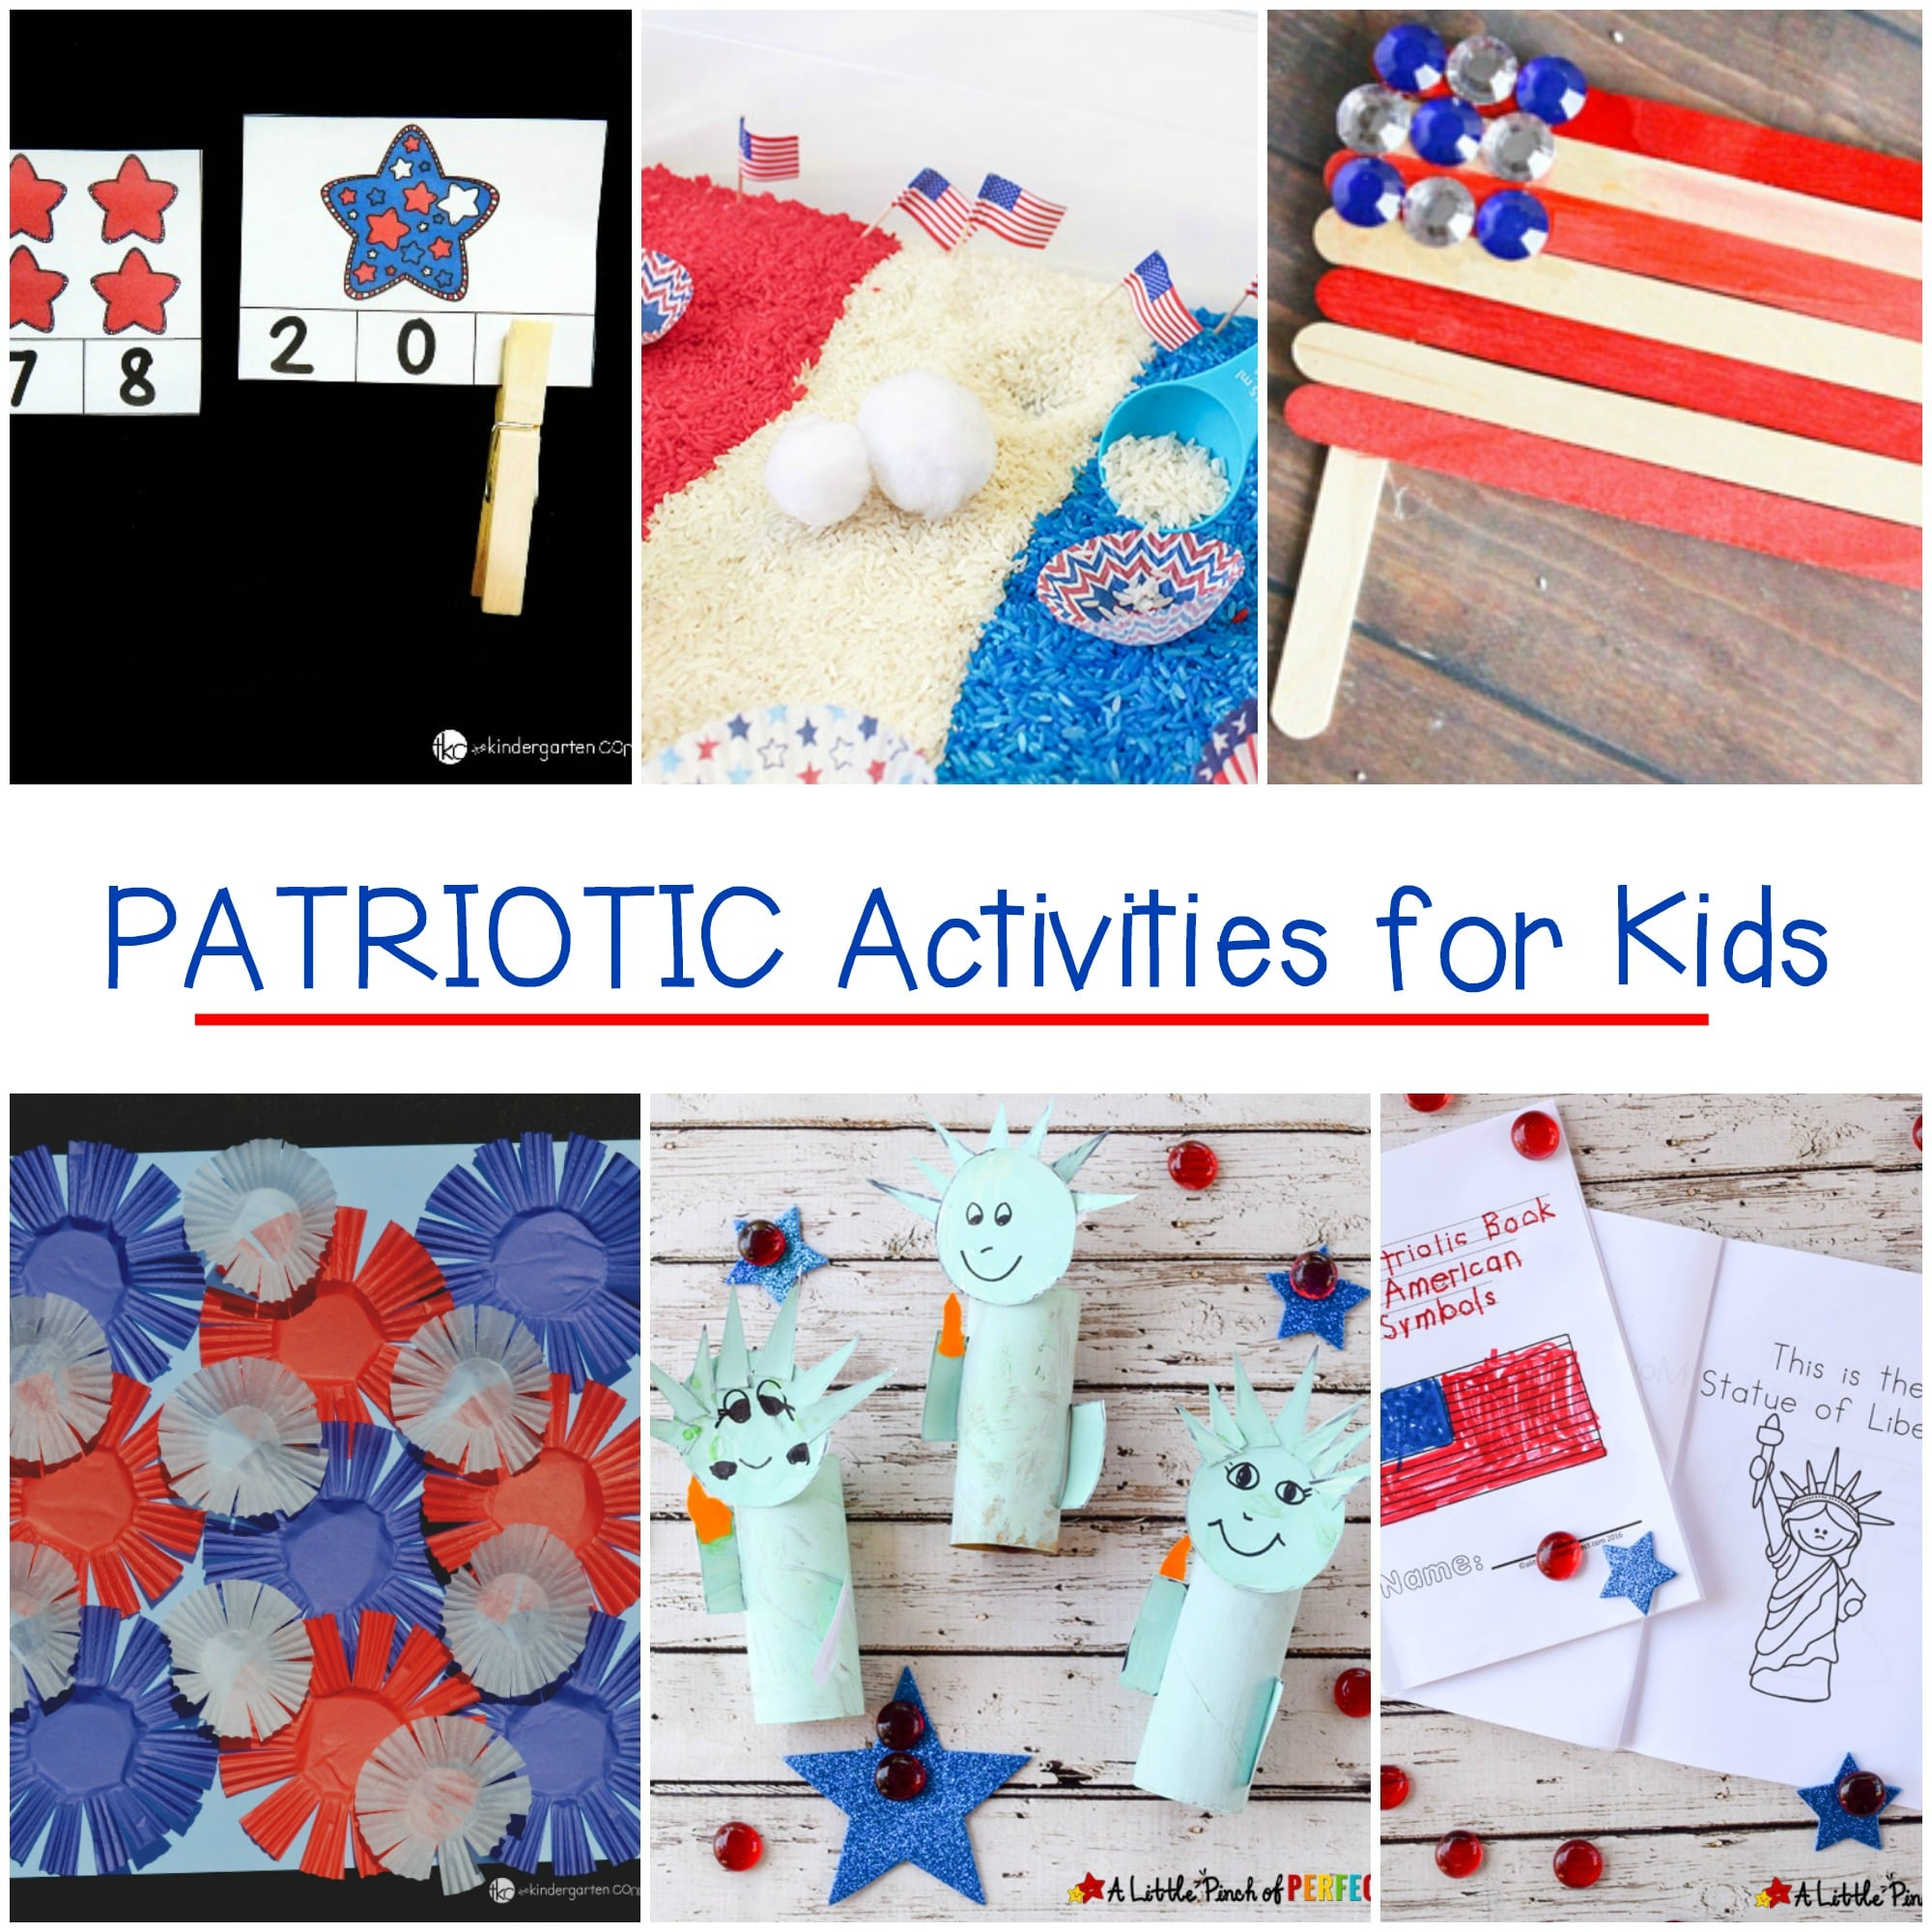 Festive And Fun Patriotic Activities For Kids